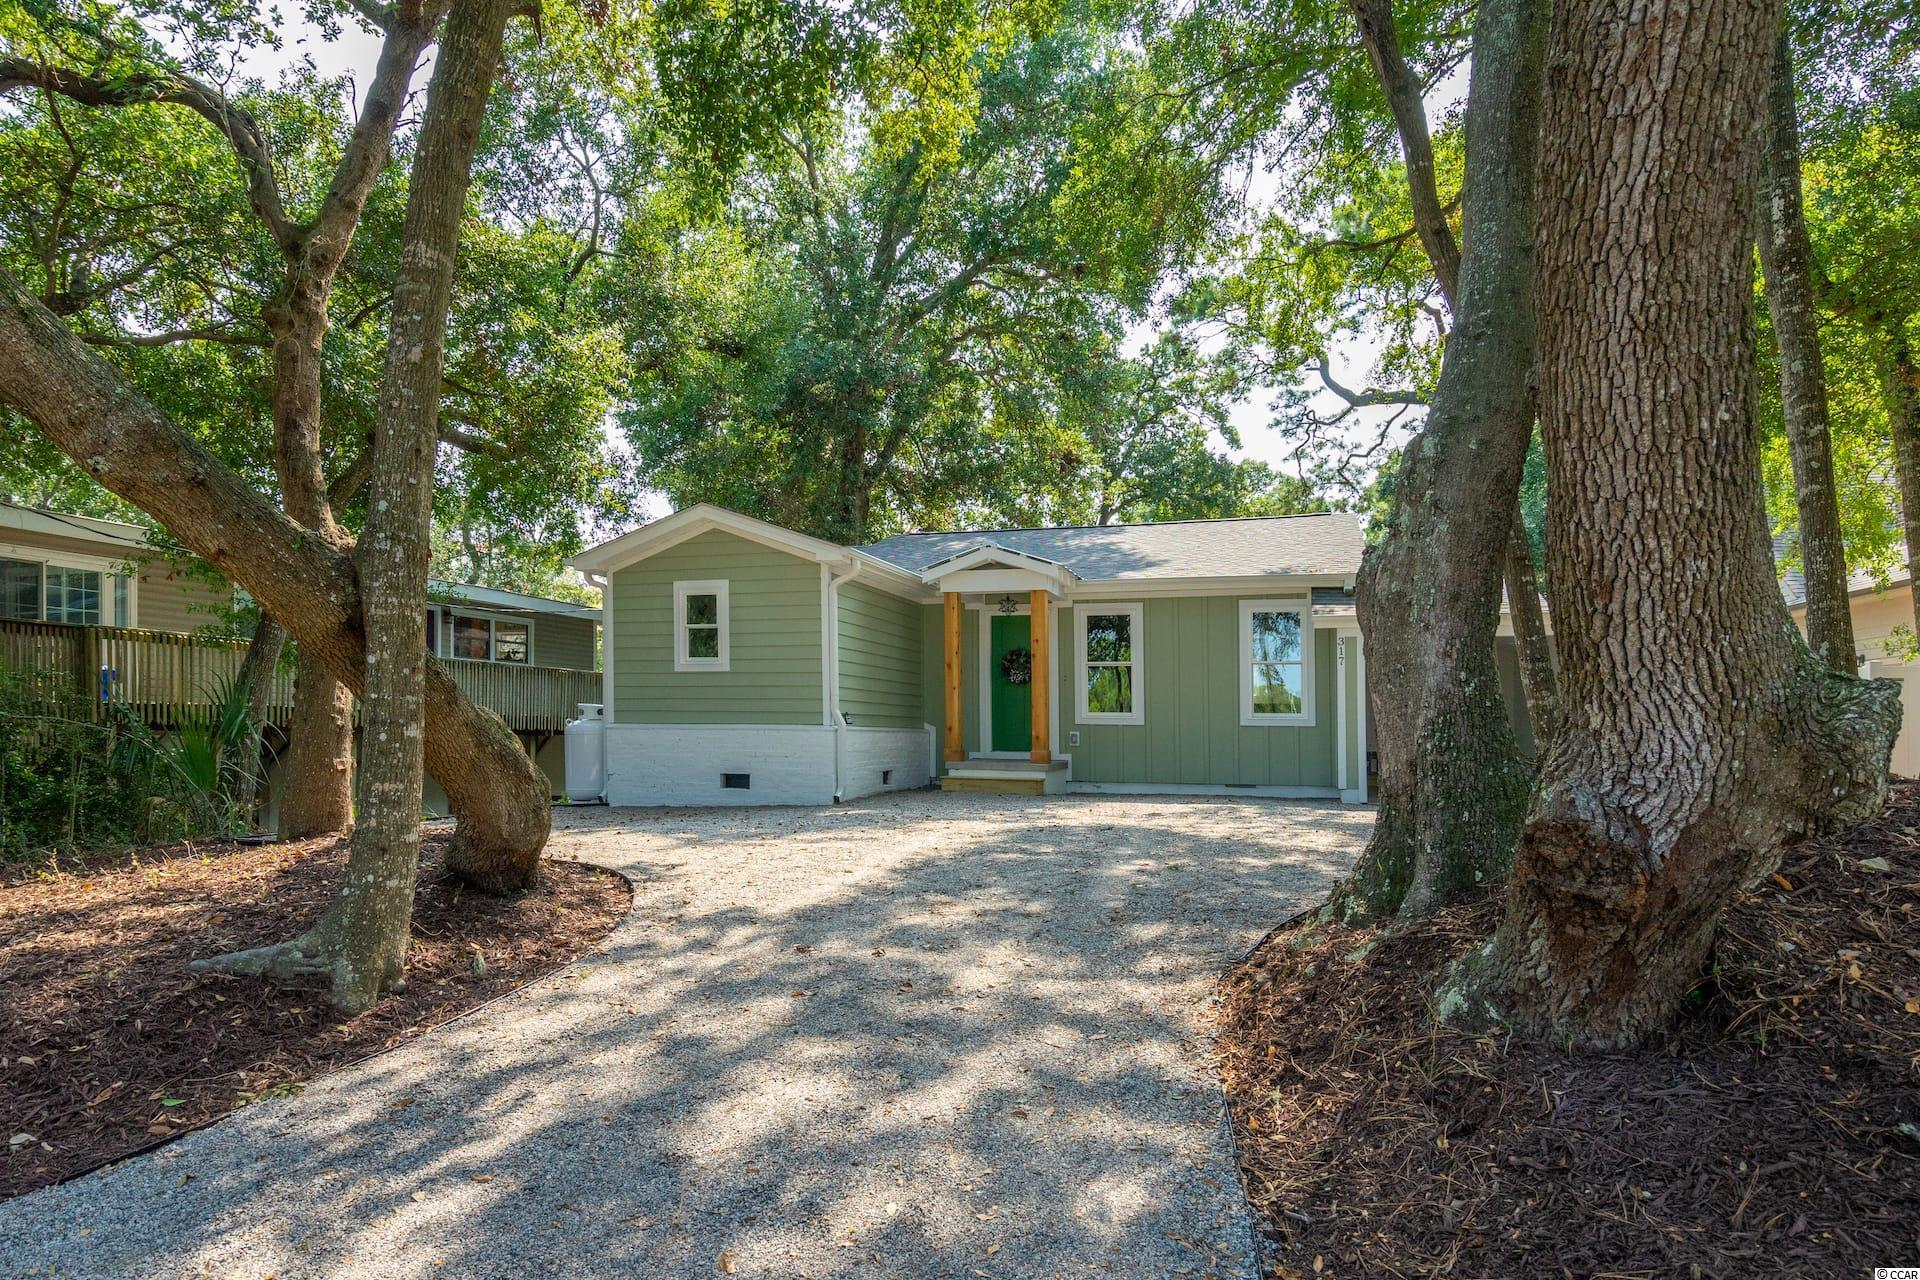 317 S 2nd Ave. S North Myrtle Beach, SC 29582